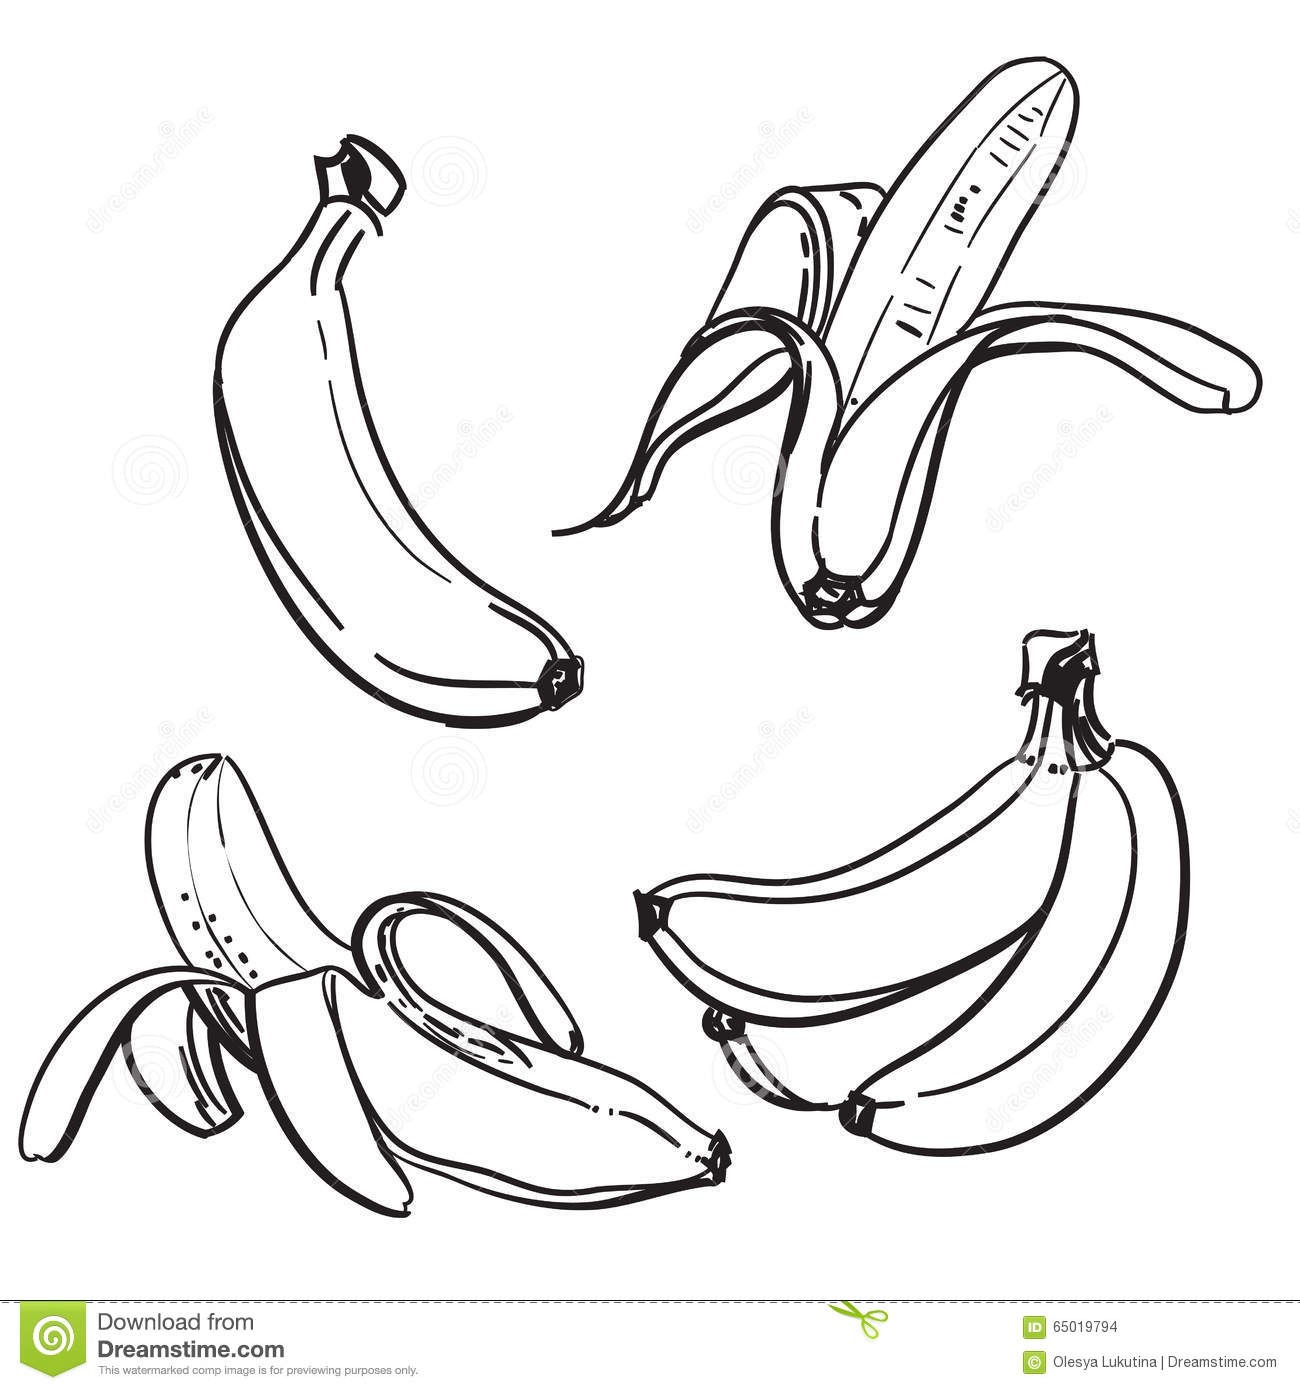 Banana Line Drawing Of Bananas On A White Background